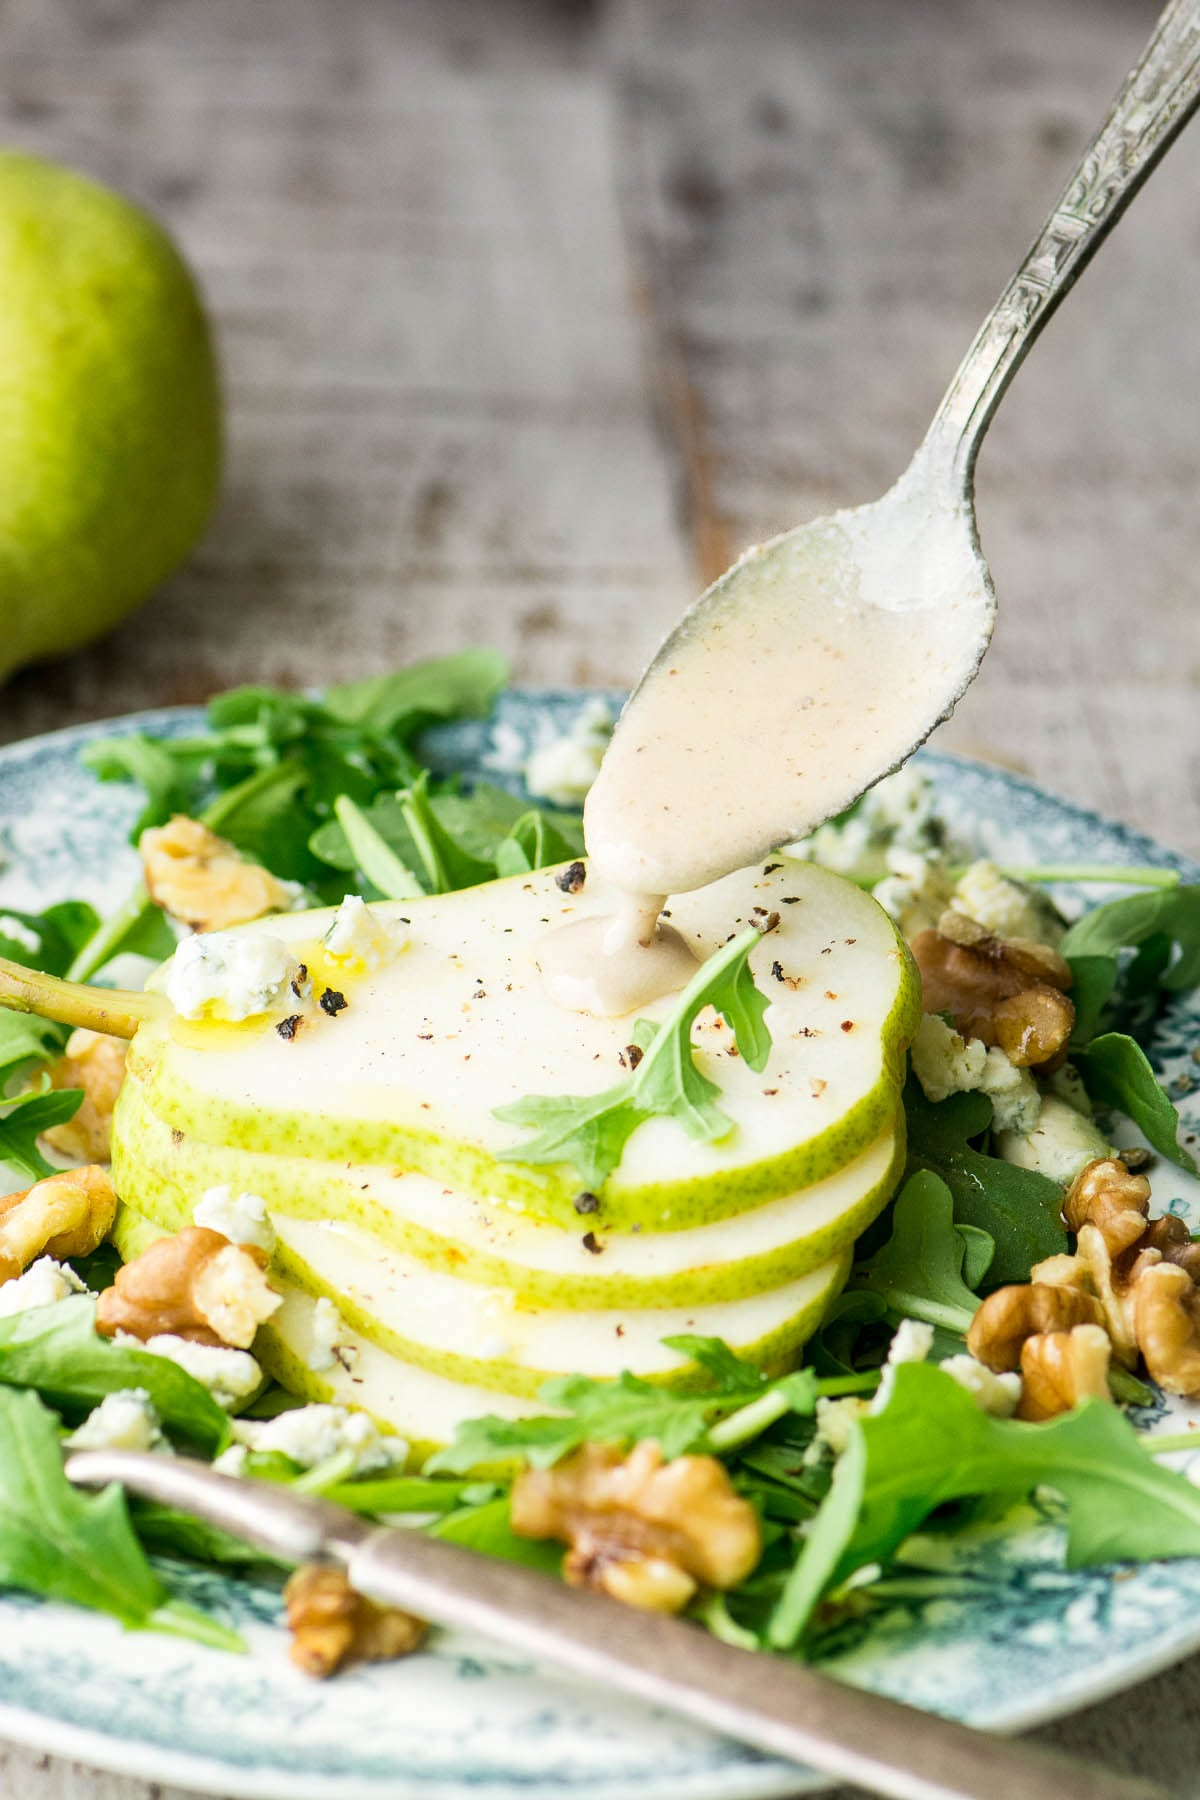 Spooning dressing over Pear Salad with Creamy Walnut Vinaigrette